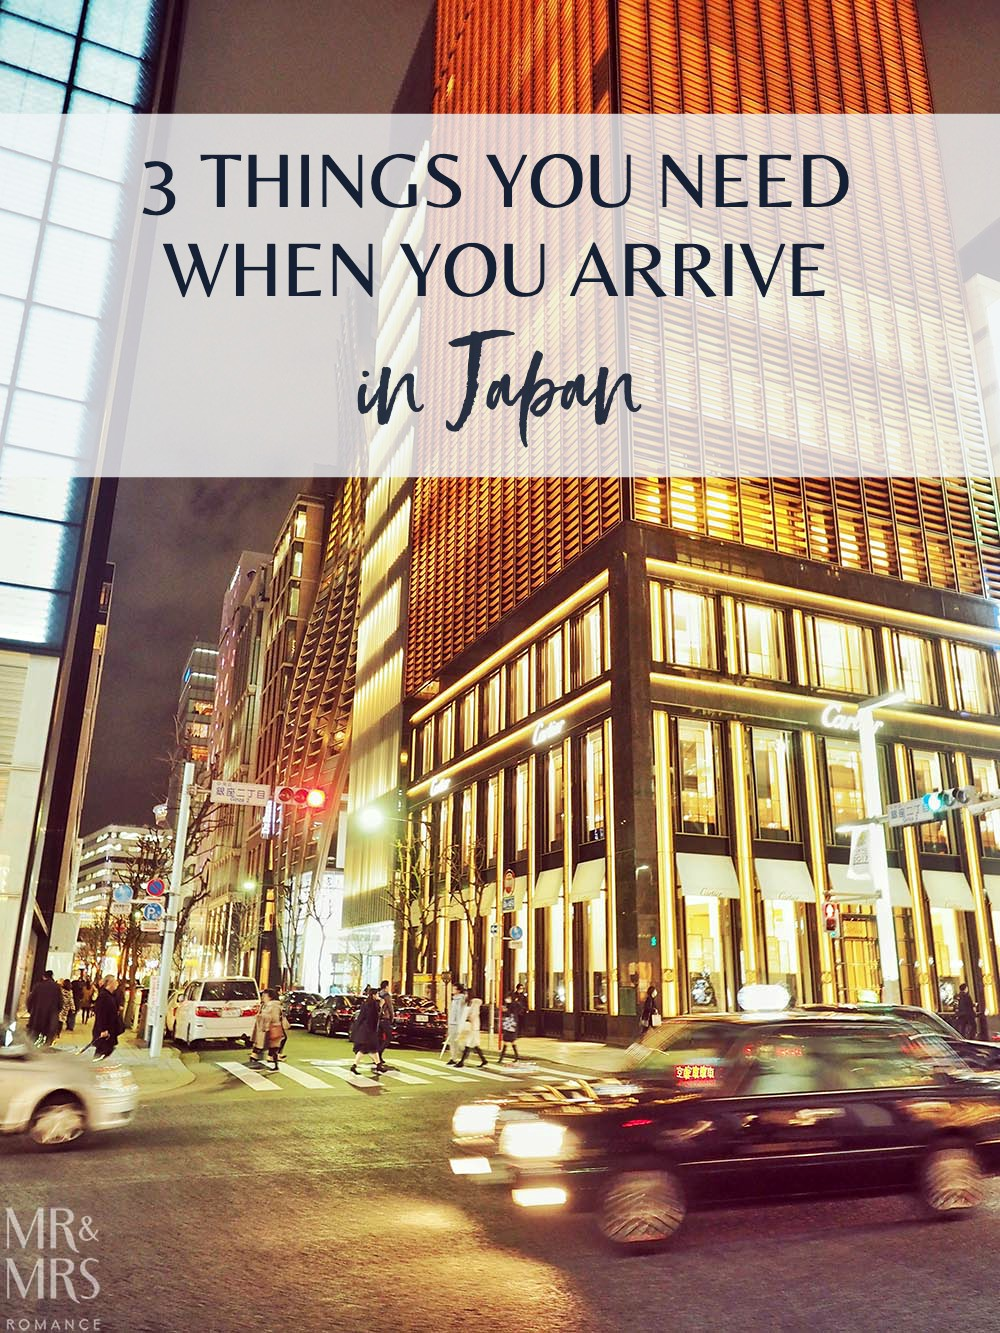 JR Rail pass - travel in Japan